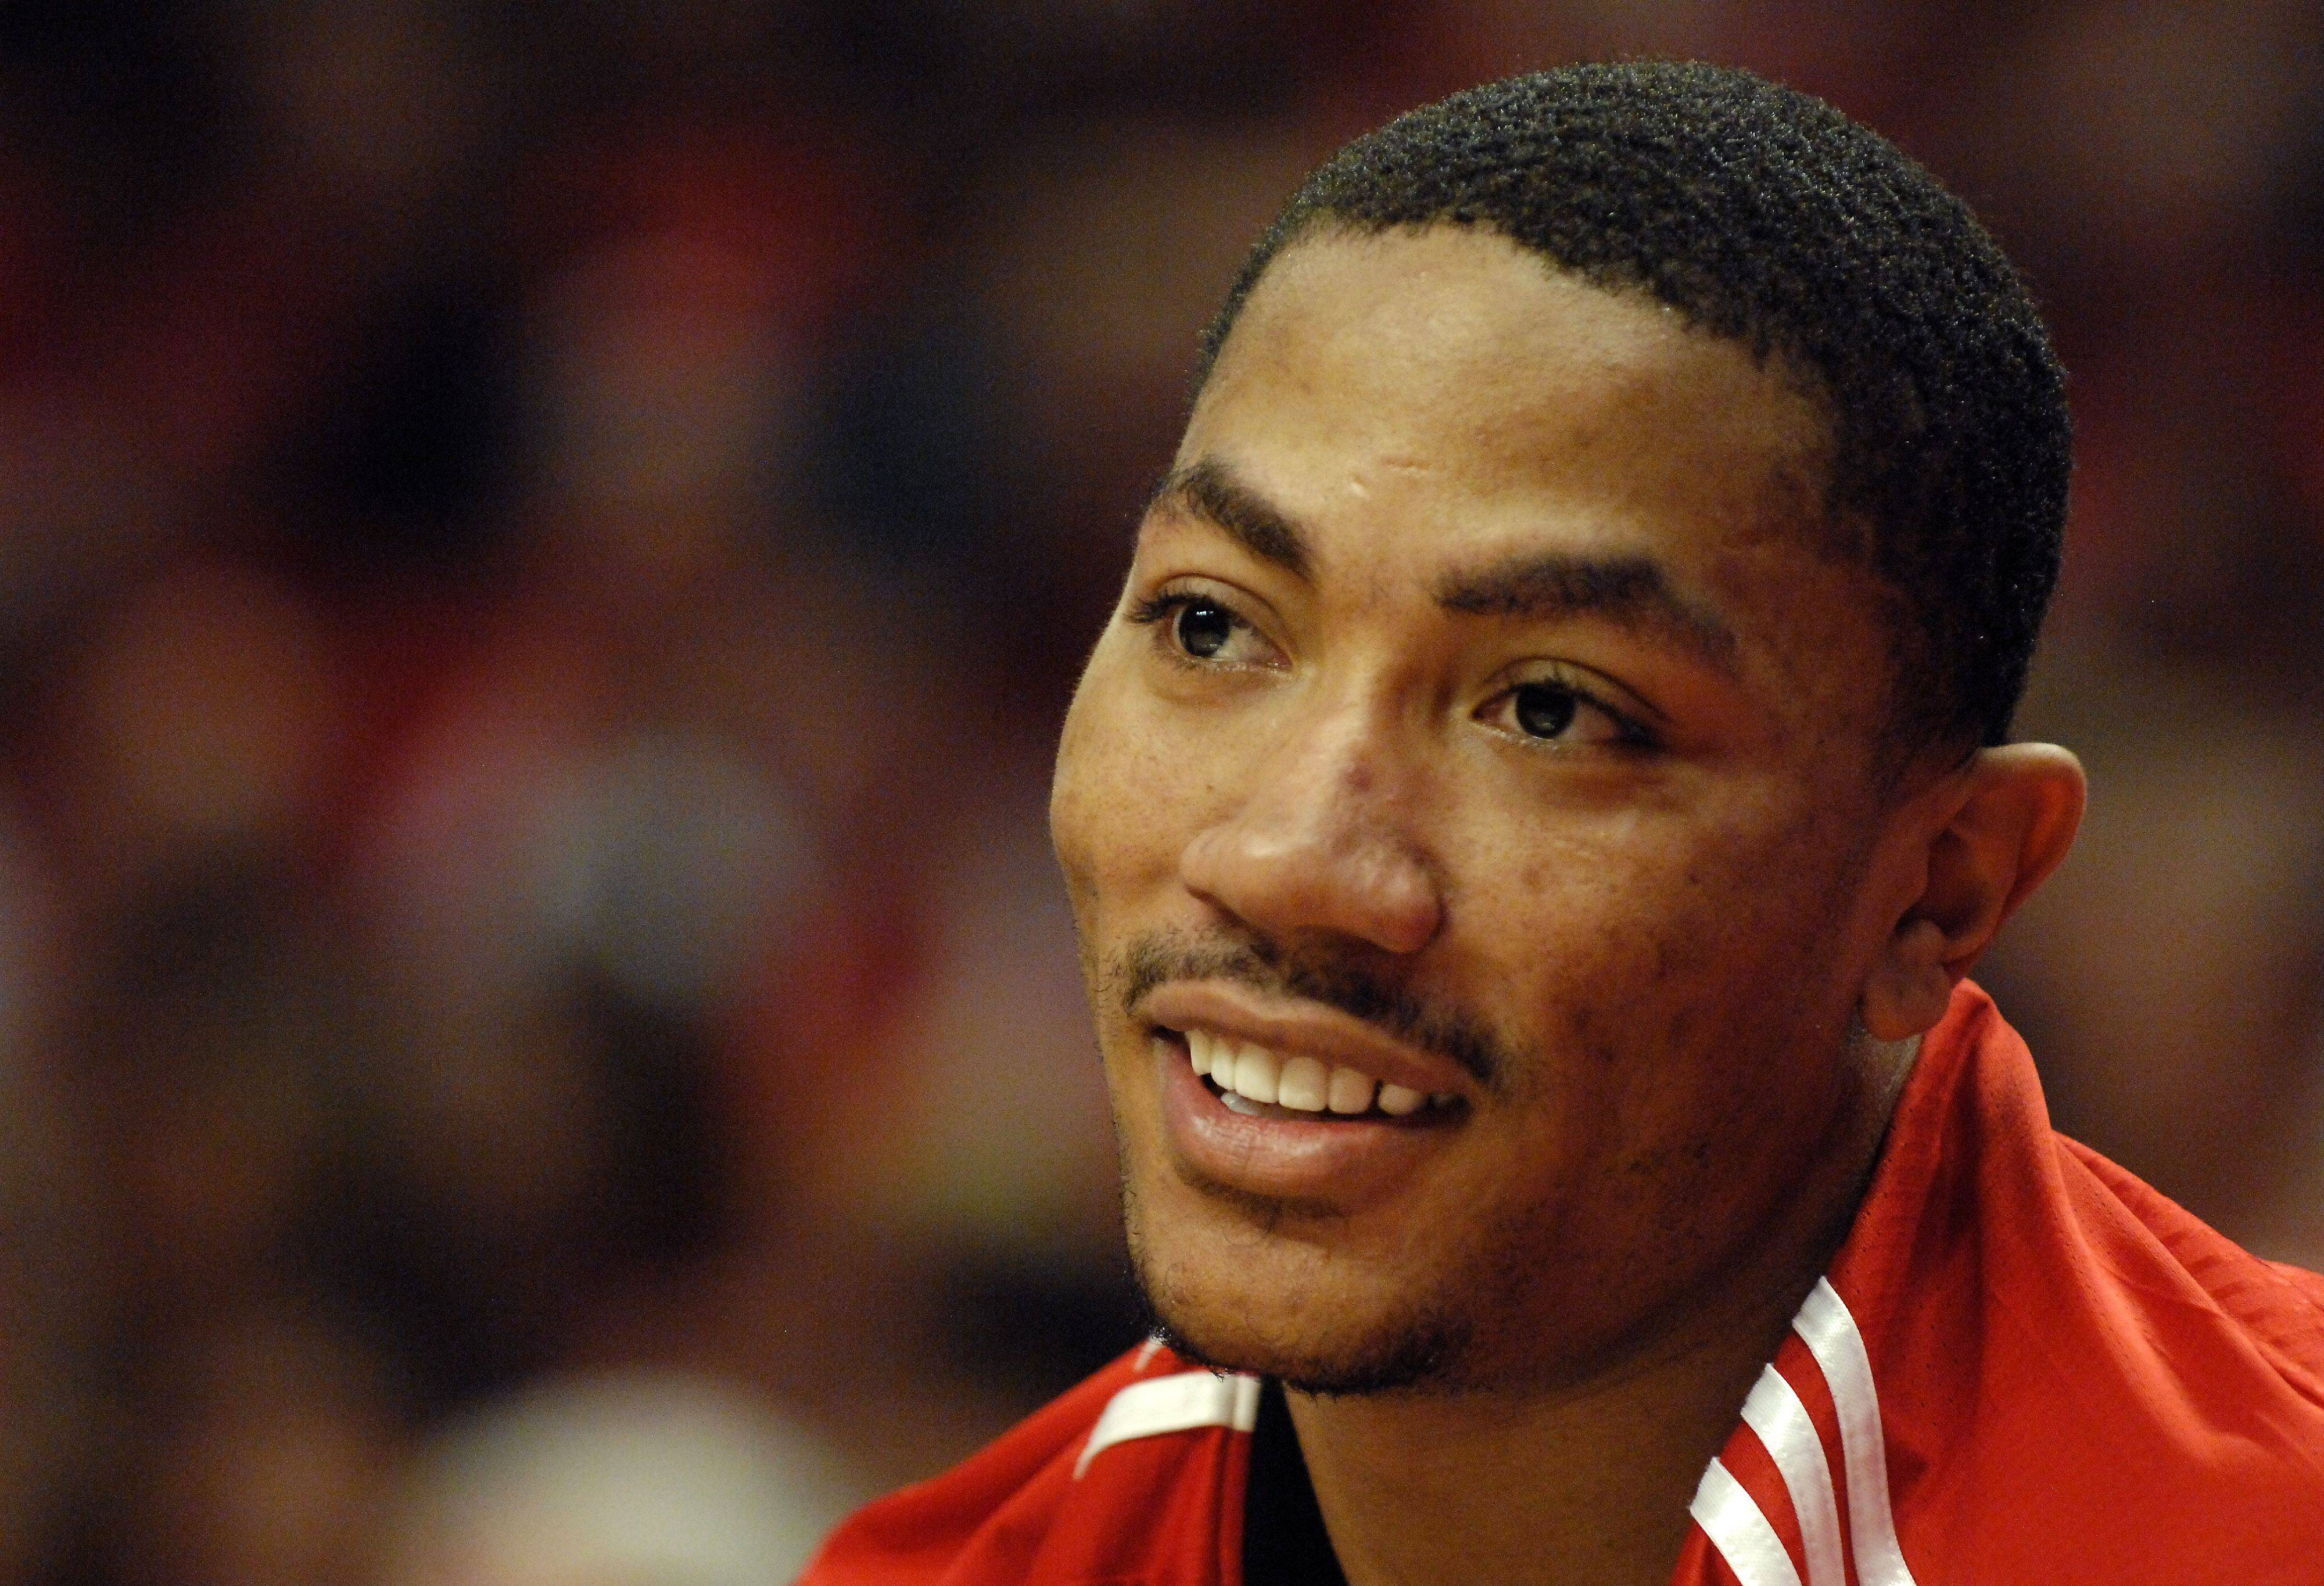 Bulls point guard Derrick Rose has earned a spot on the All-NBA First Team, league officials reported Thursday..